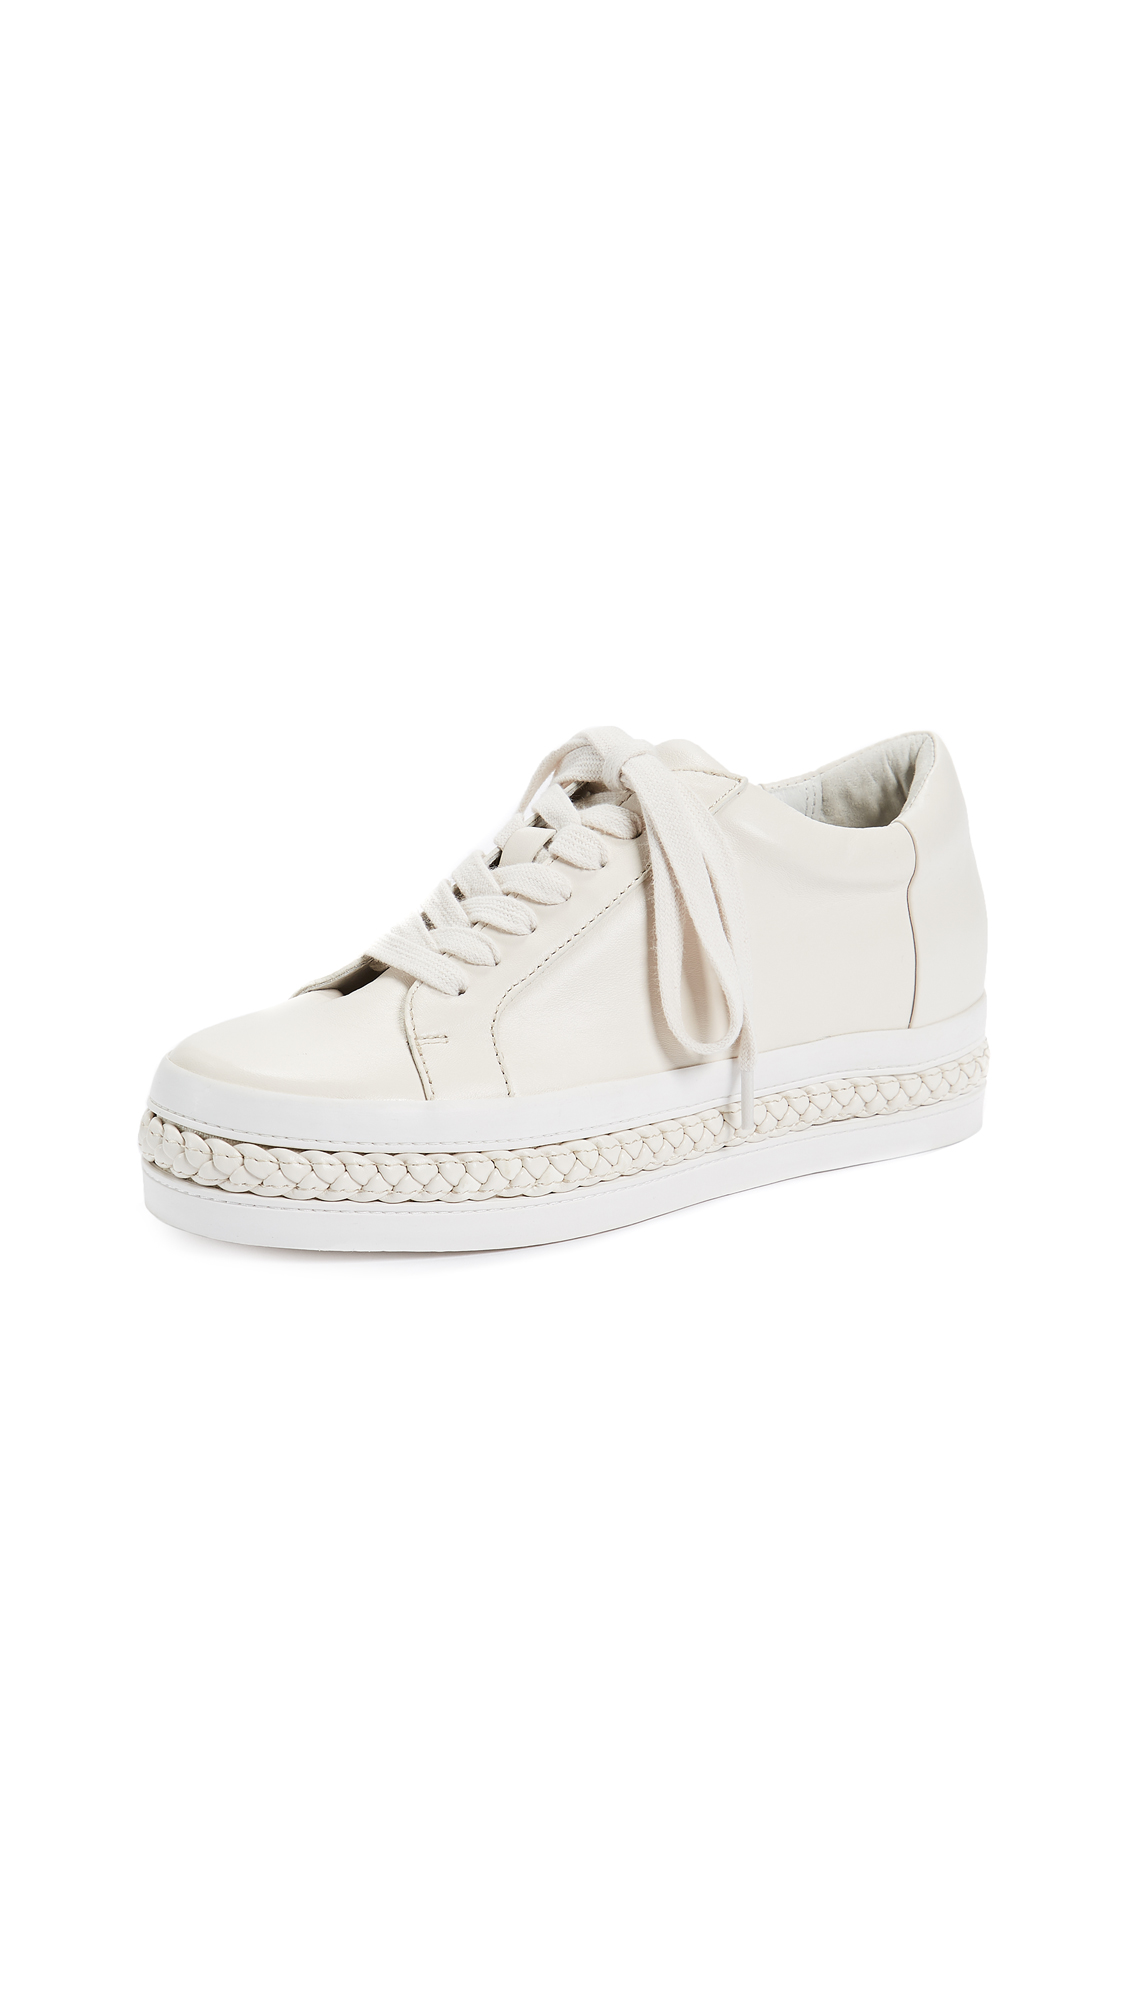 Rachel Zoe Collette Braid Sneakers - Ecru/Ecru